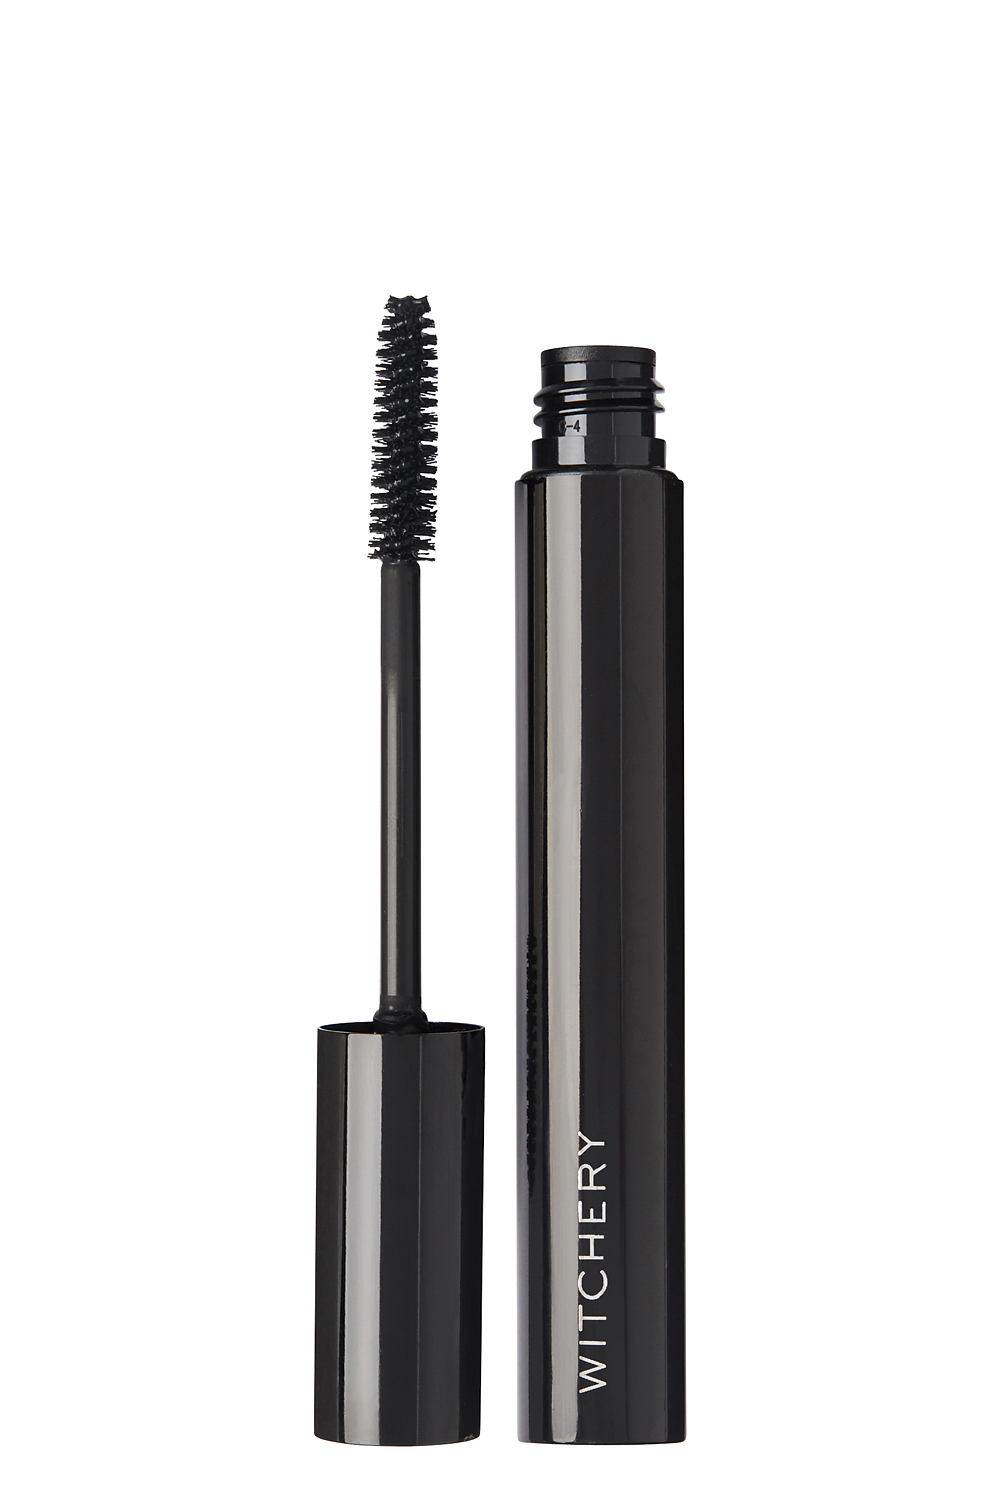 60172146_witcherybeauty-mascara-fibrelash-21-90